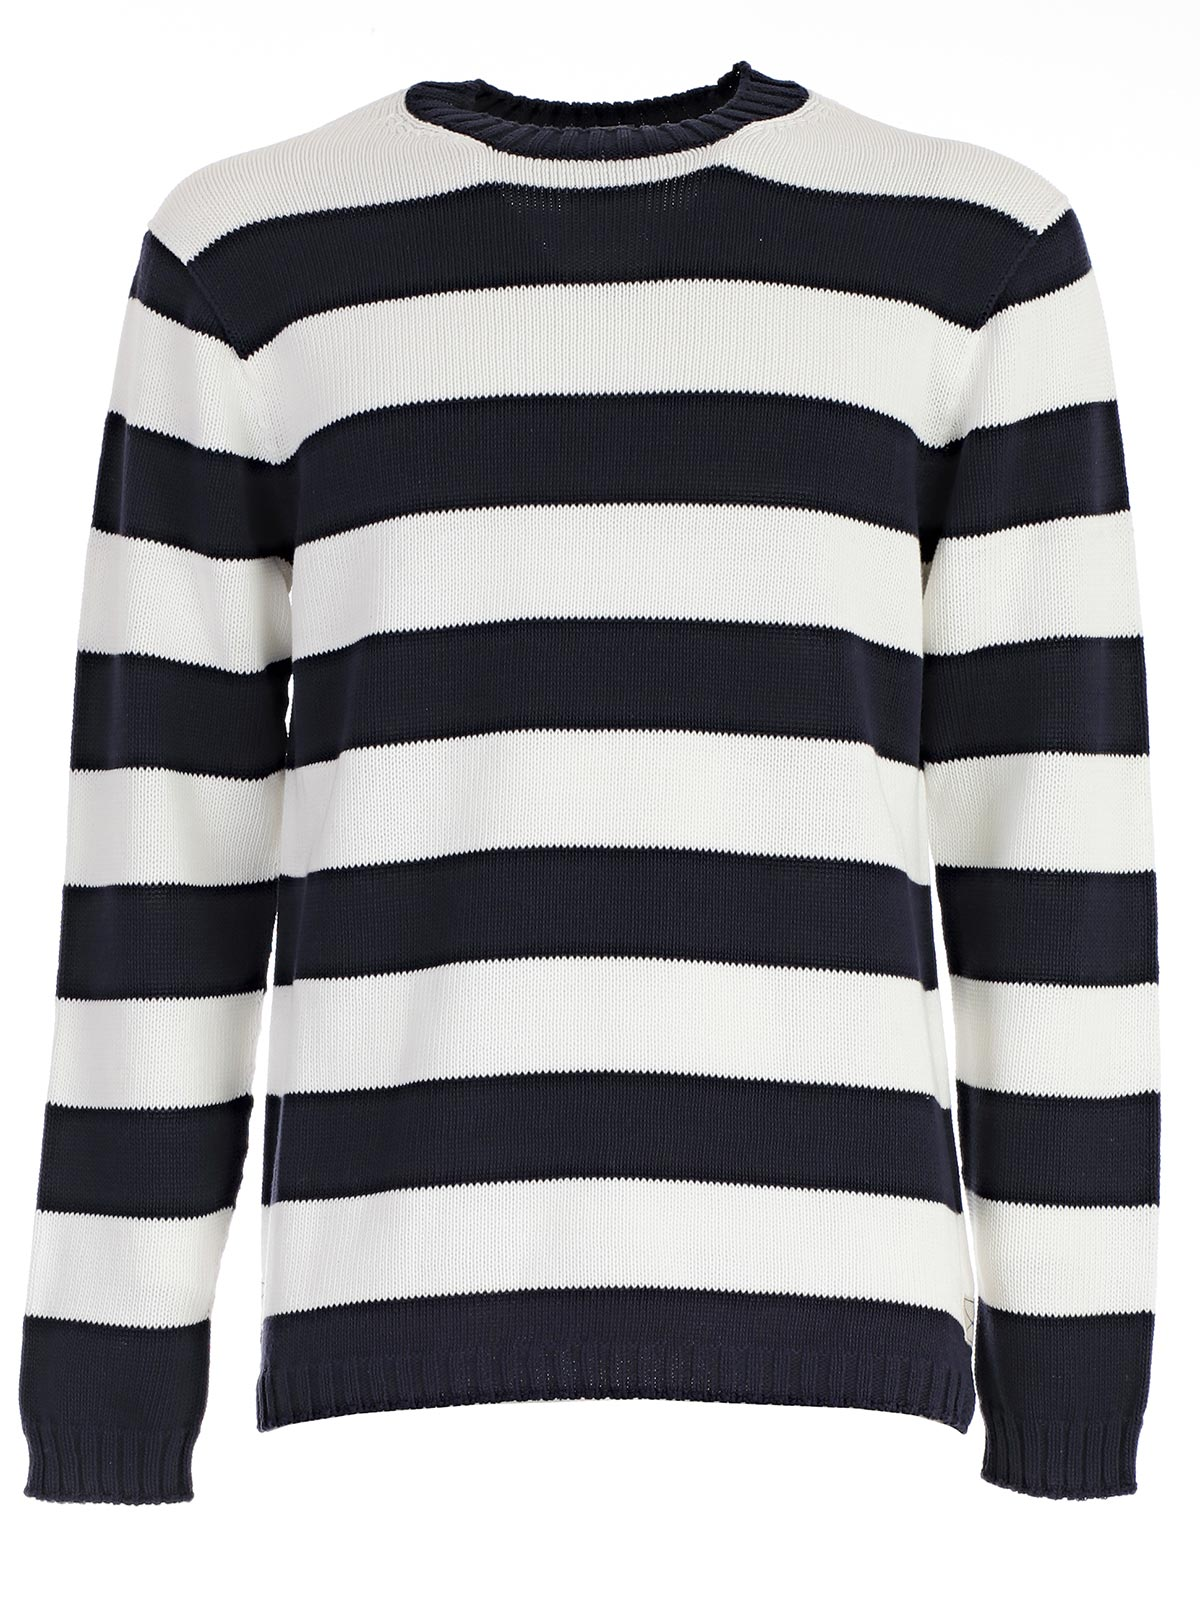 Picture of JUNYA WATANABE COMME DES GARCONS JERSEY